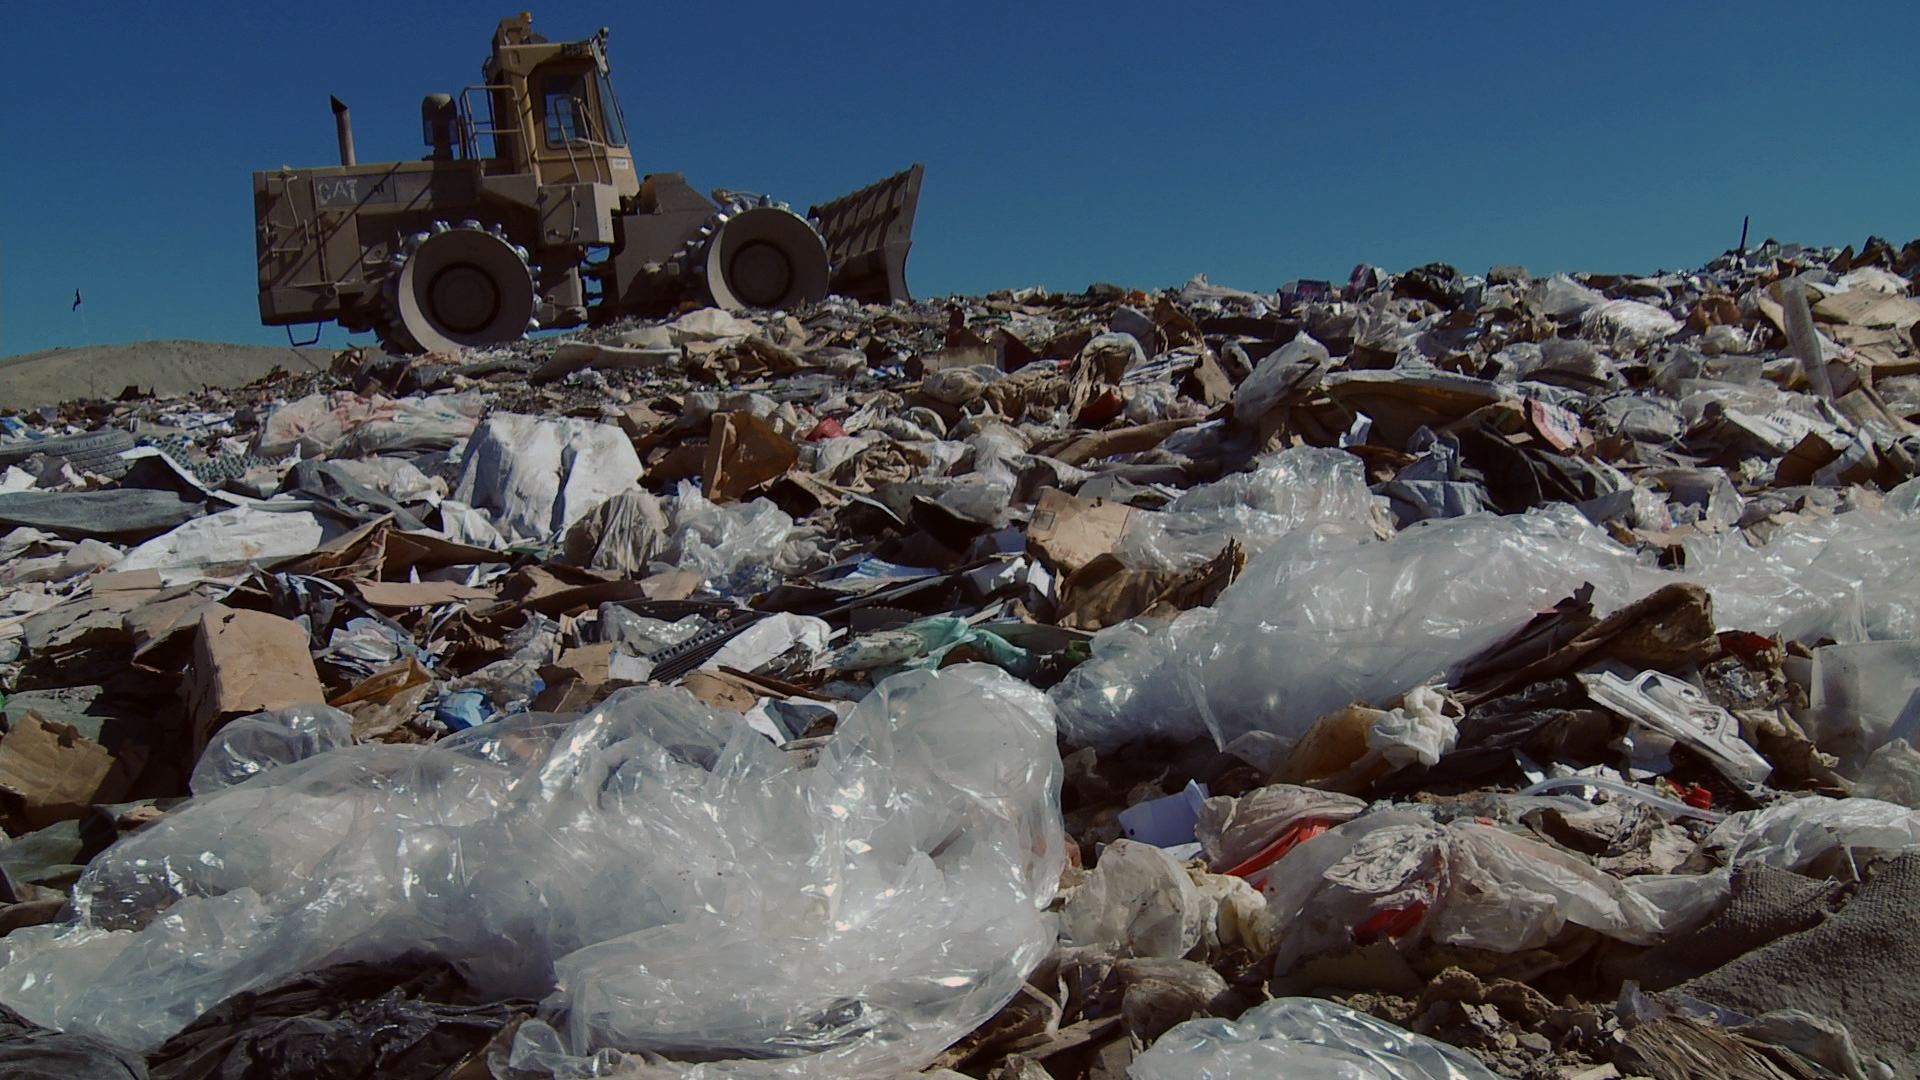 &#8220;Bag-It&#8221;, the Movie&#8230;is your life too plastic?<br>Celebrate Earth Day and help protect YOUR community